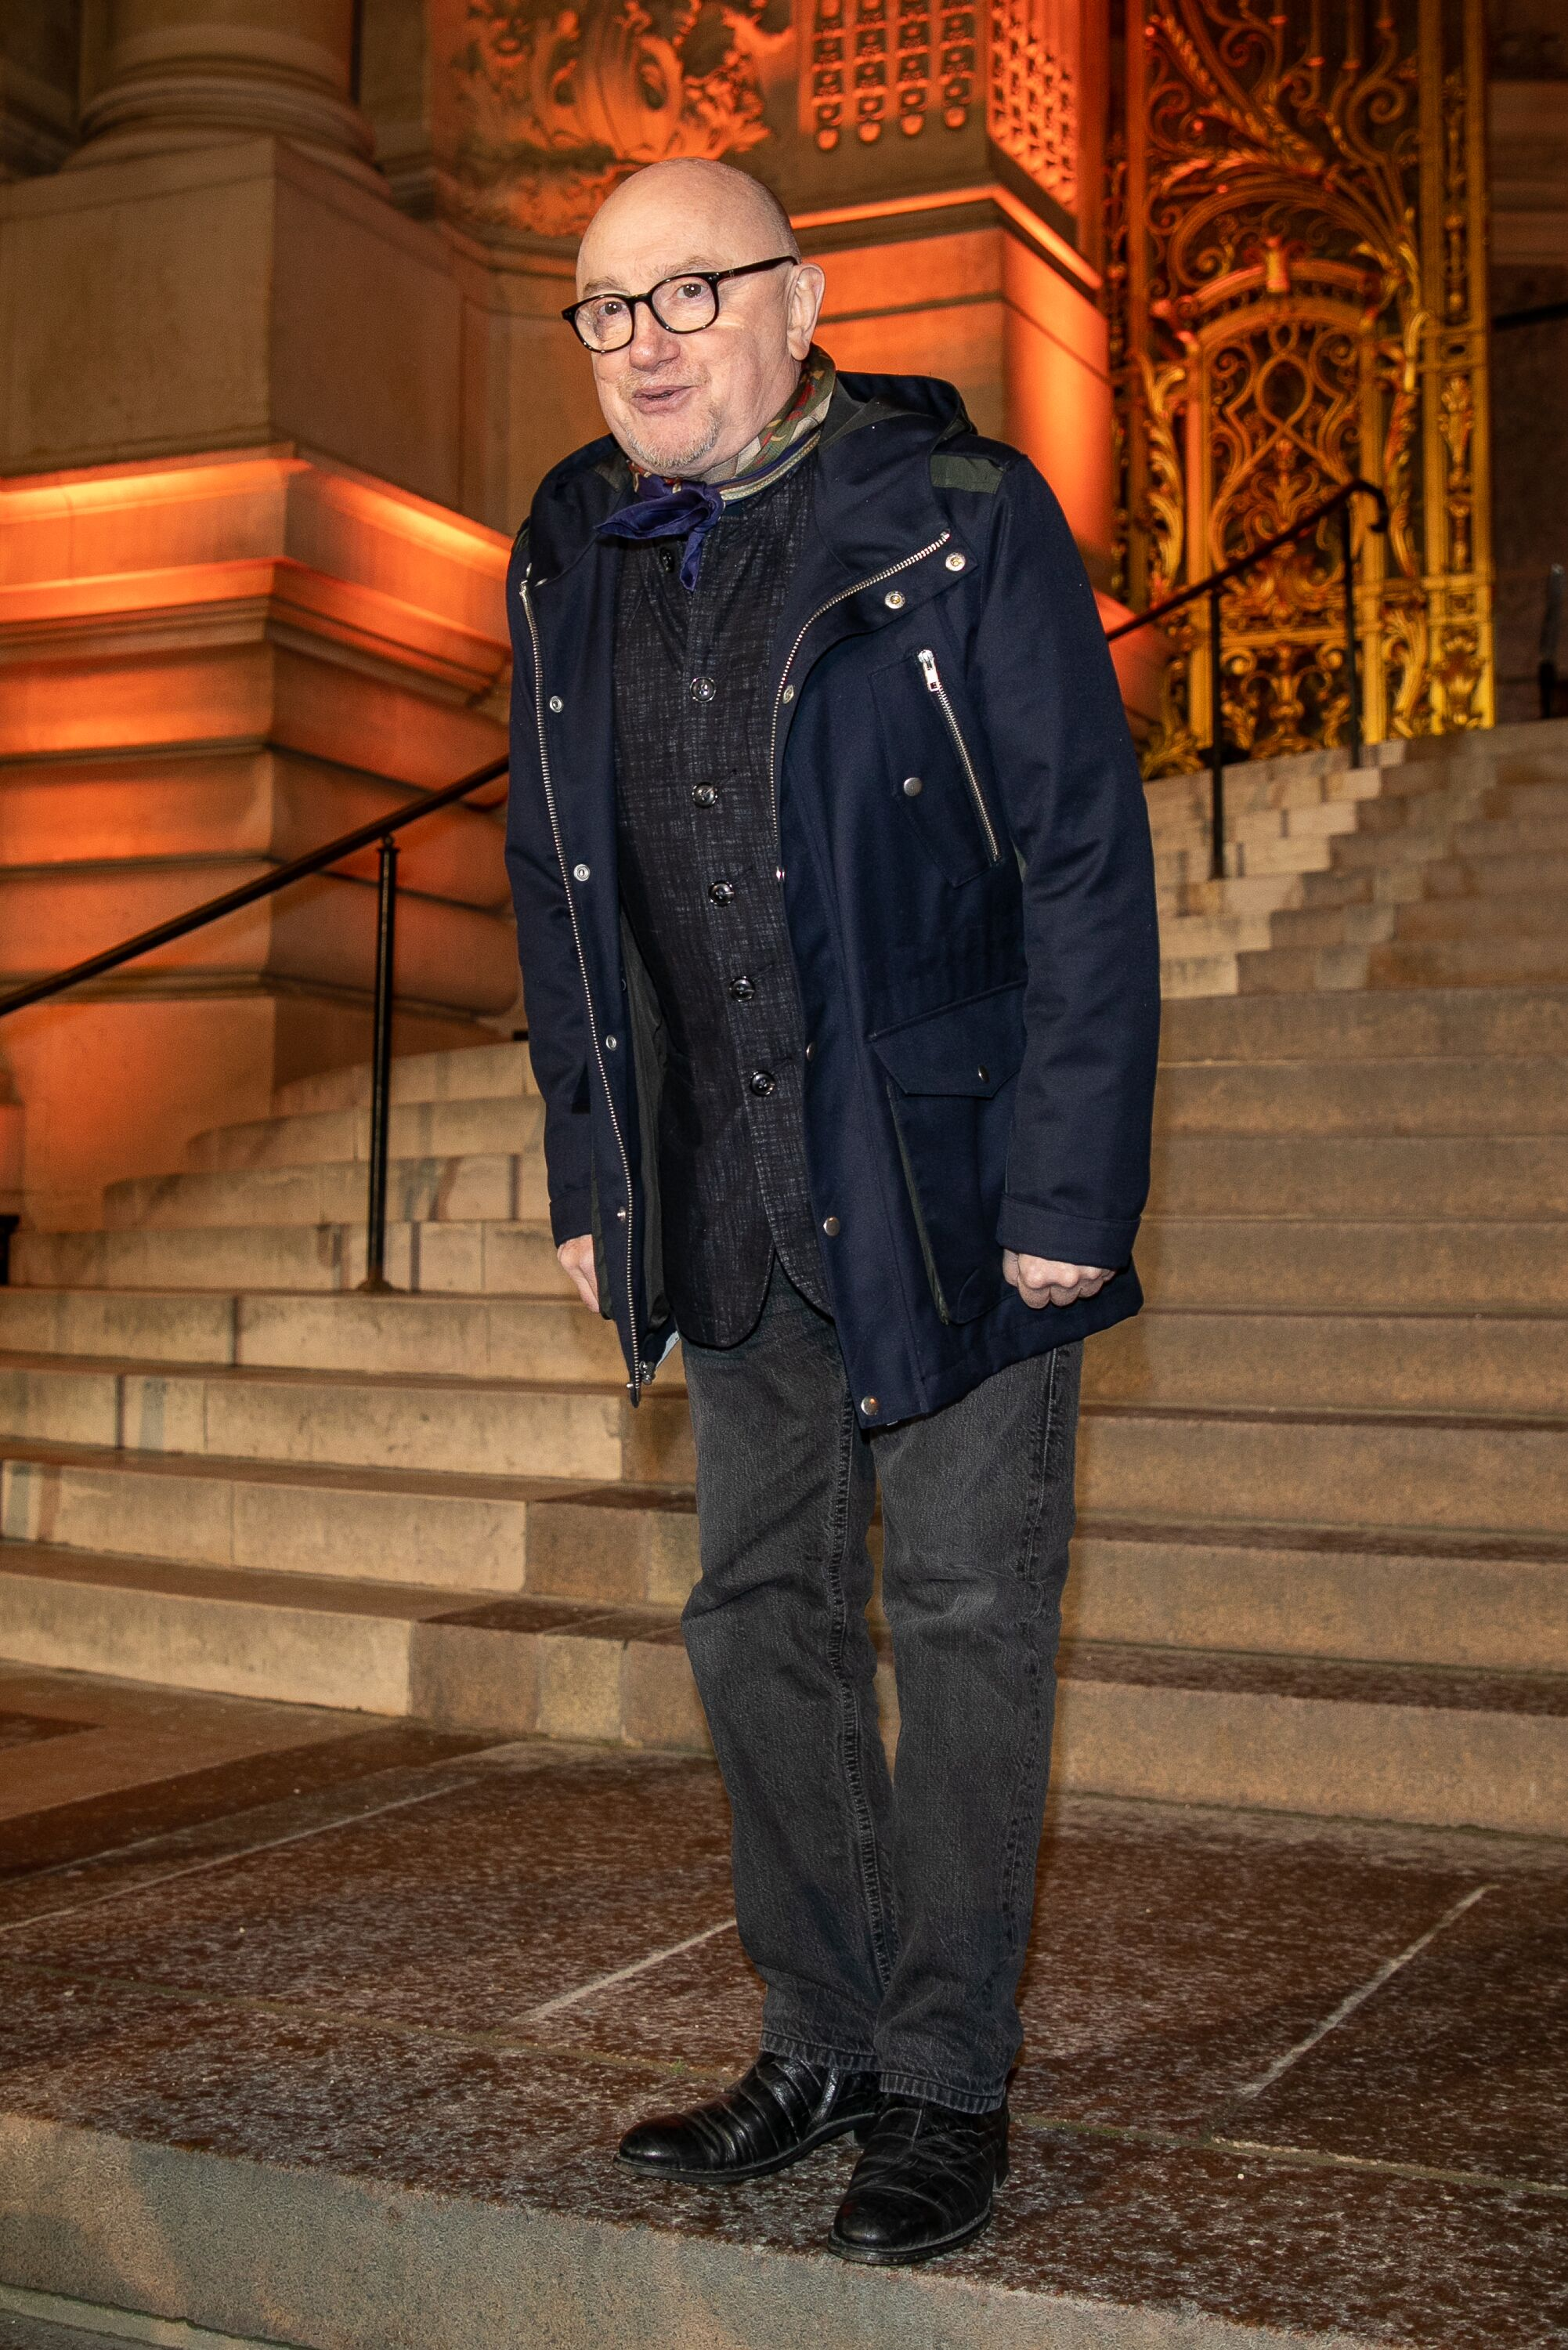 L'acteur Michel Blanc au Petit Palais le 13 janvier 2020 à Paris, France. | Photo : Getty Images